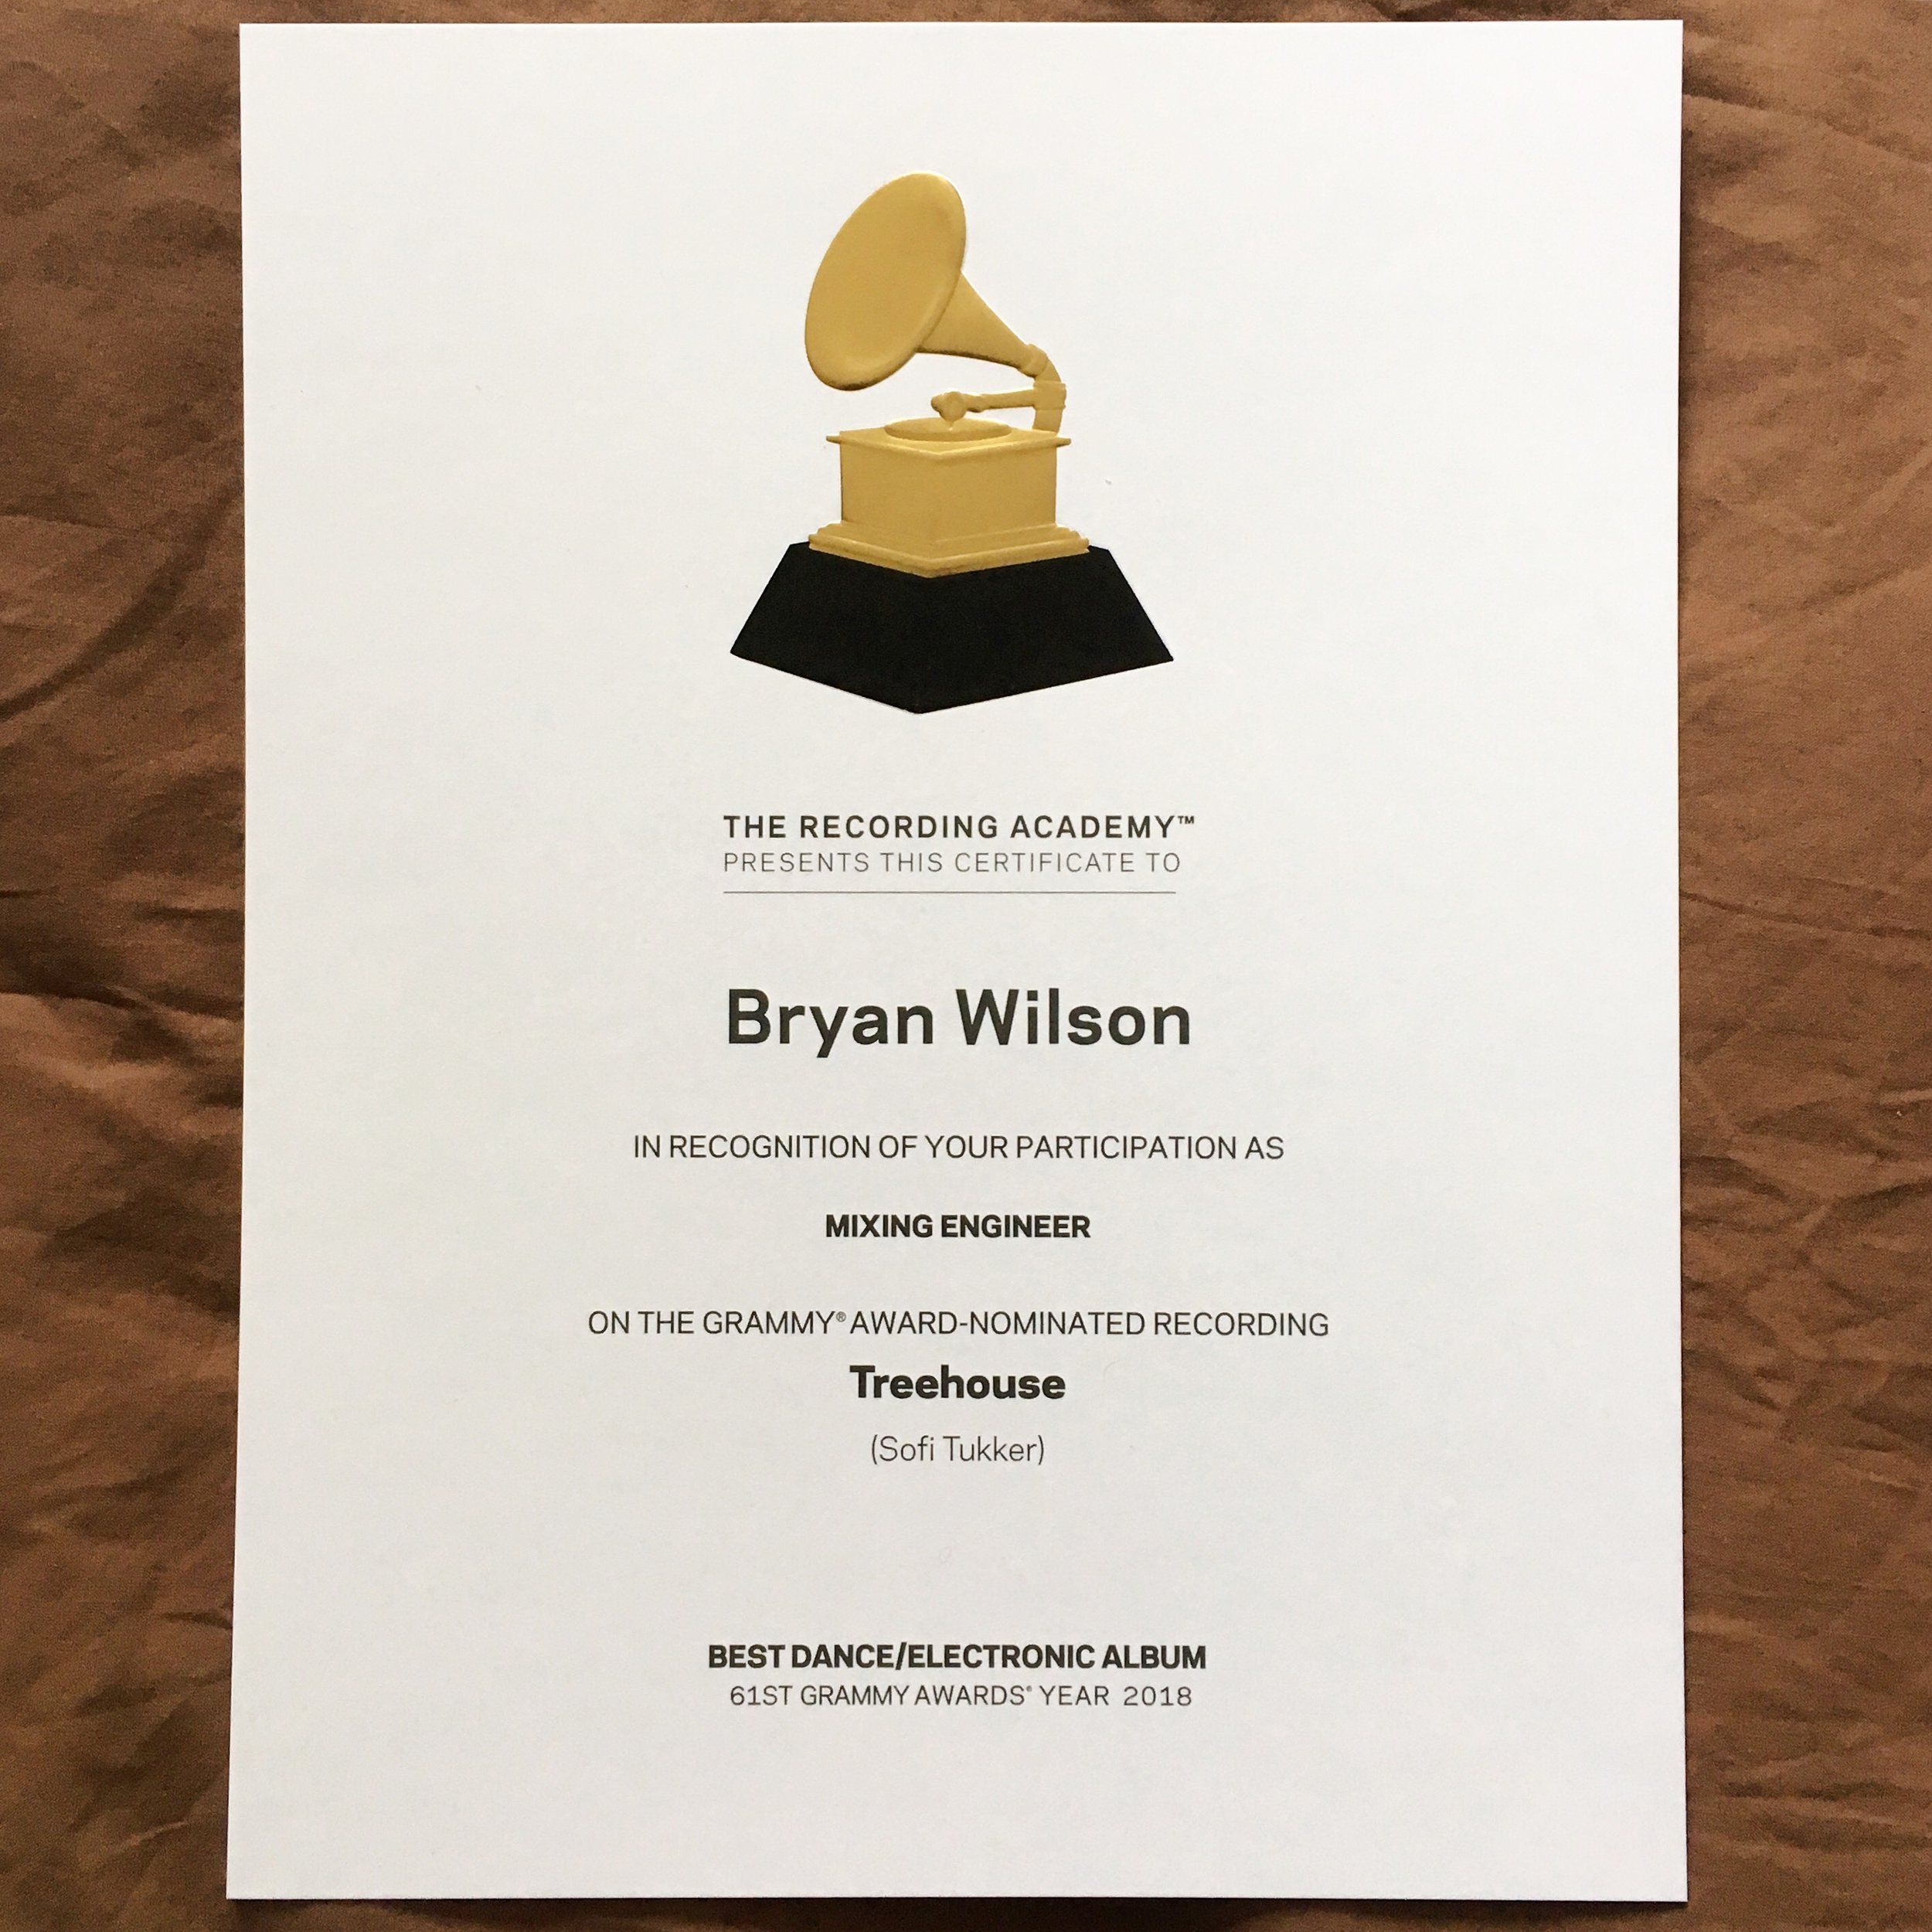 Bryan Wilson Treehouse Grammy Awards